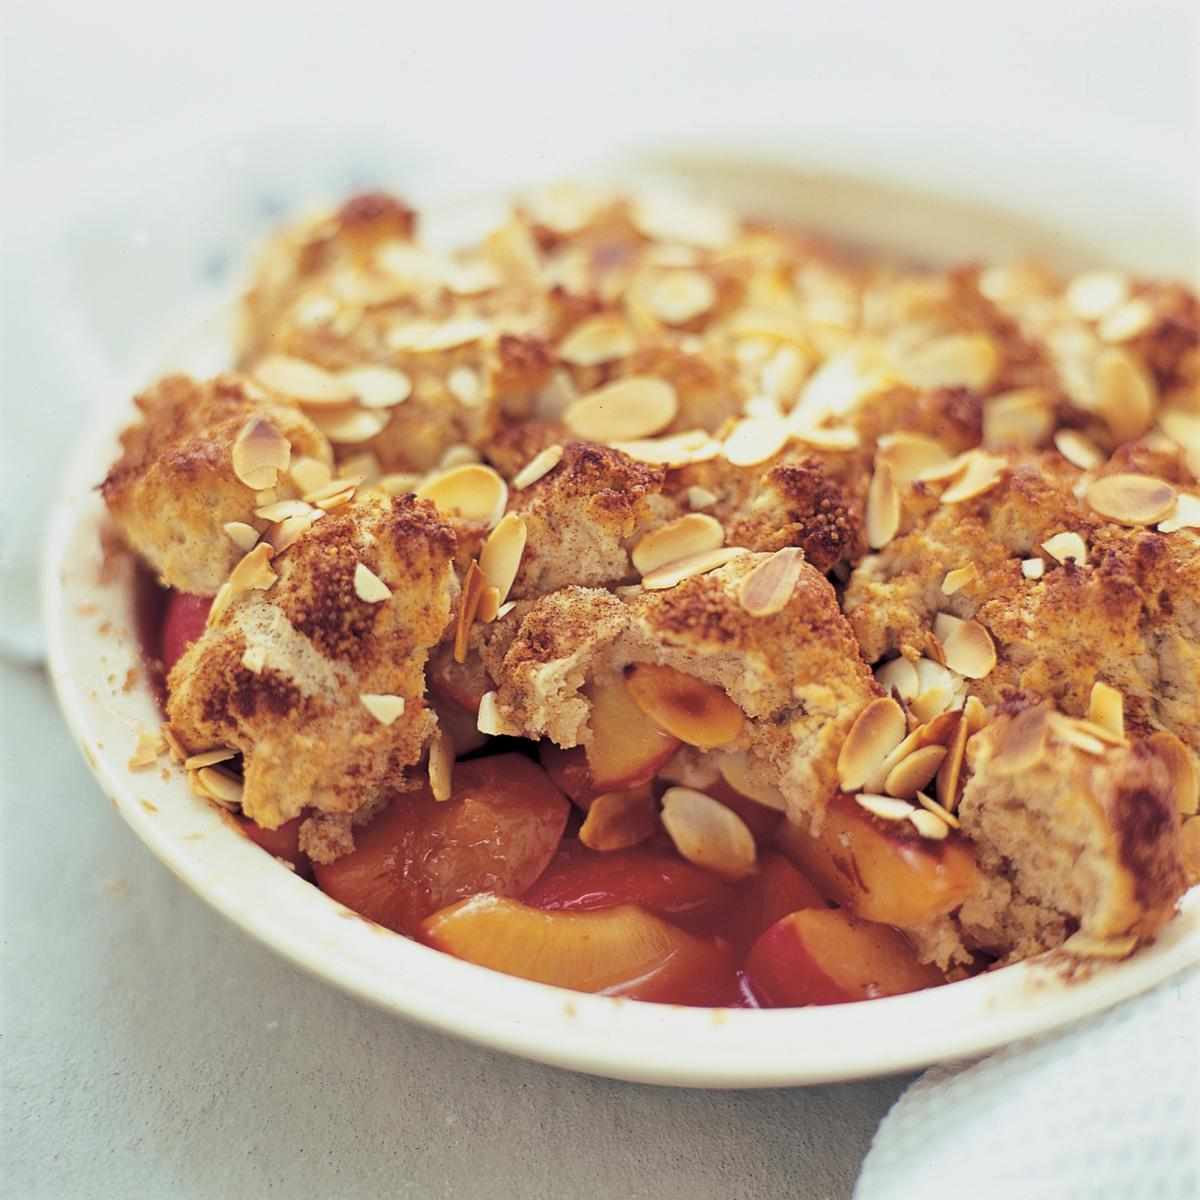 A picture of Delia's Plum and Almond Buttermilk Cobbler recipe